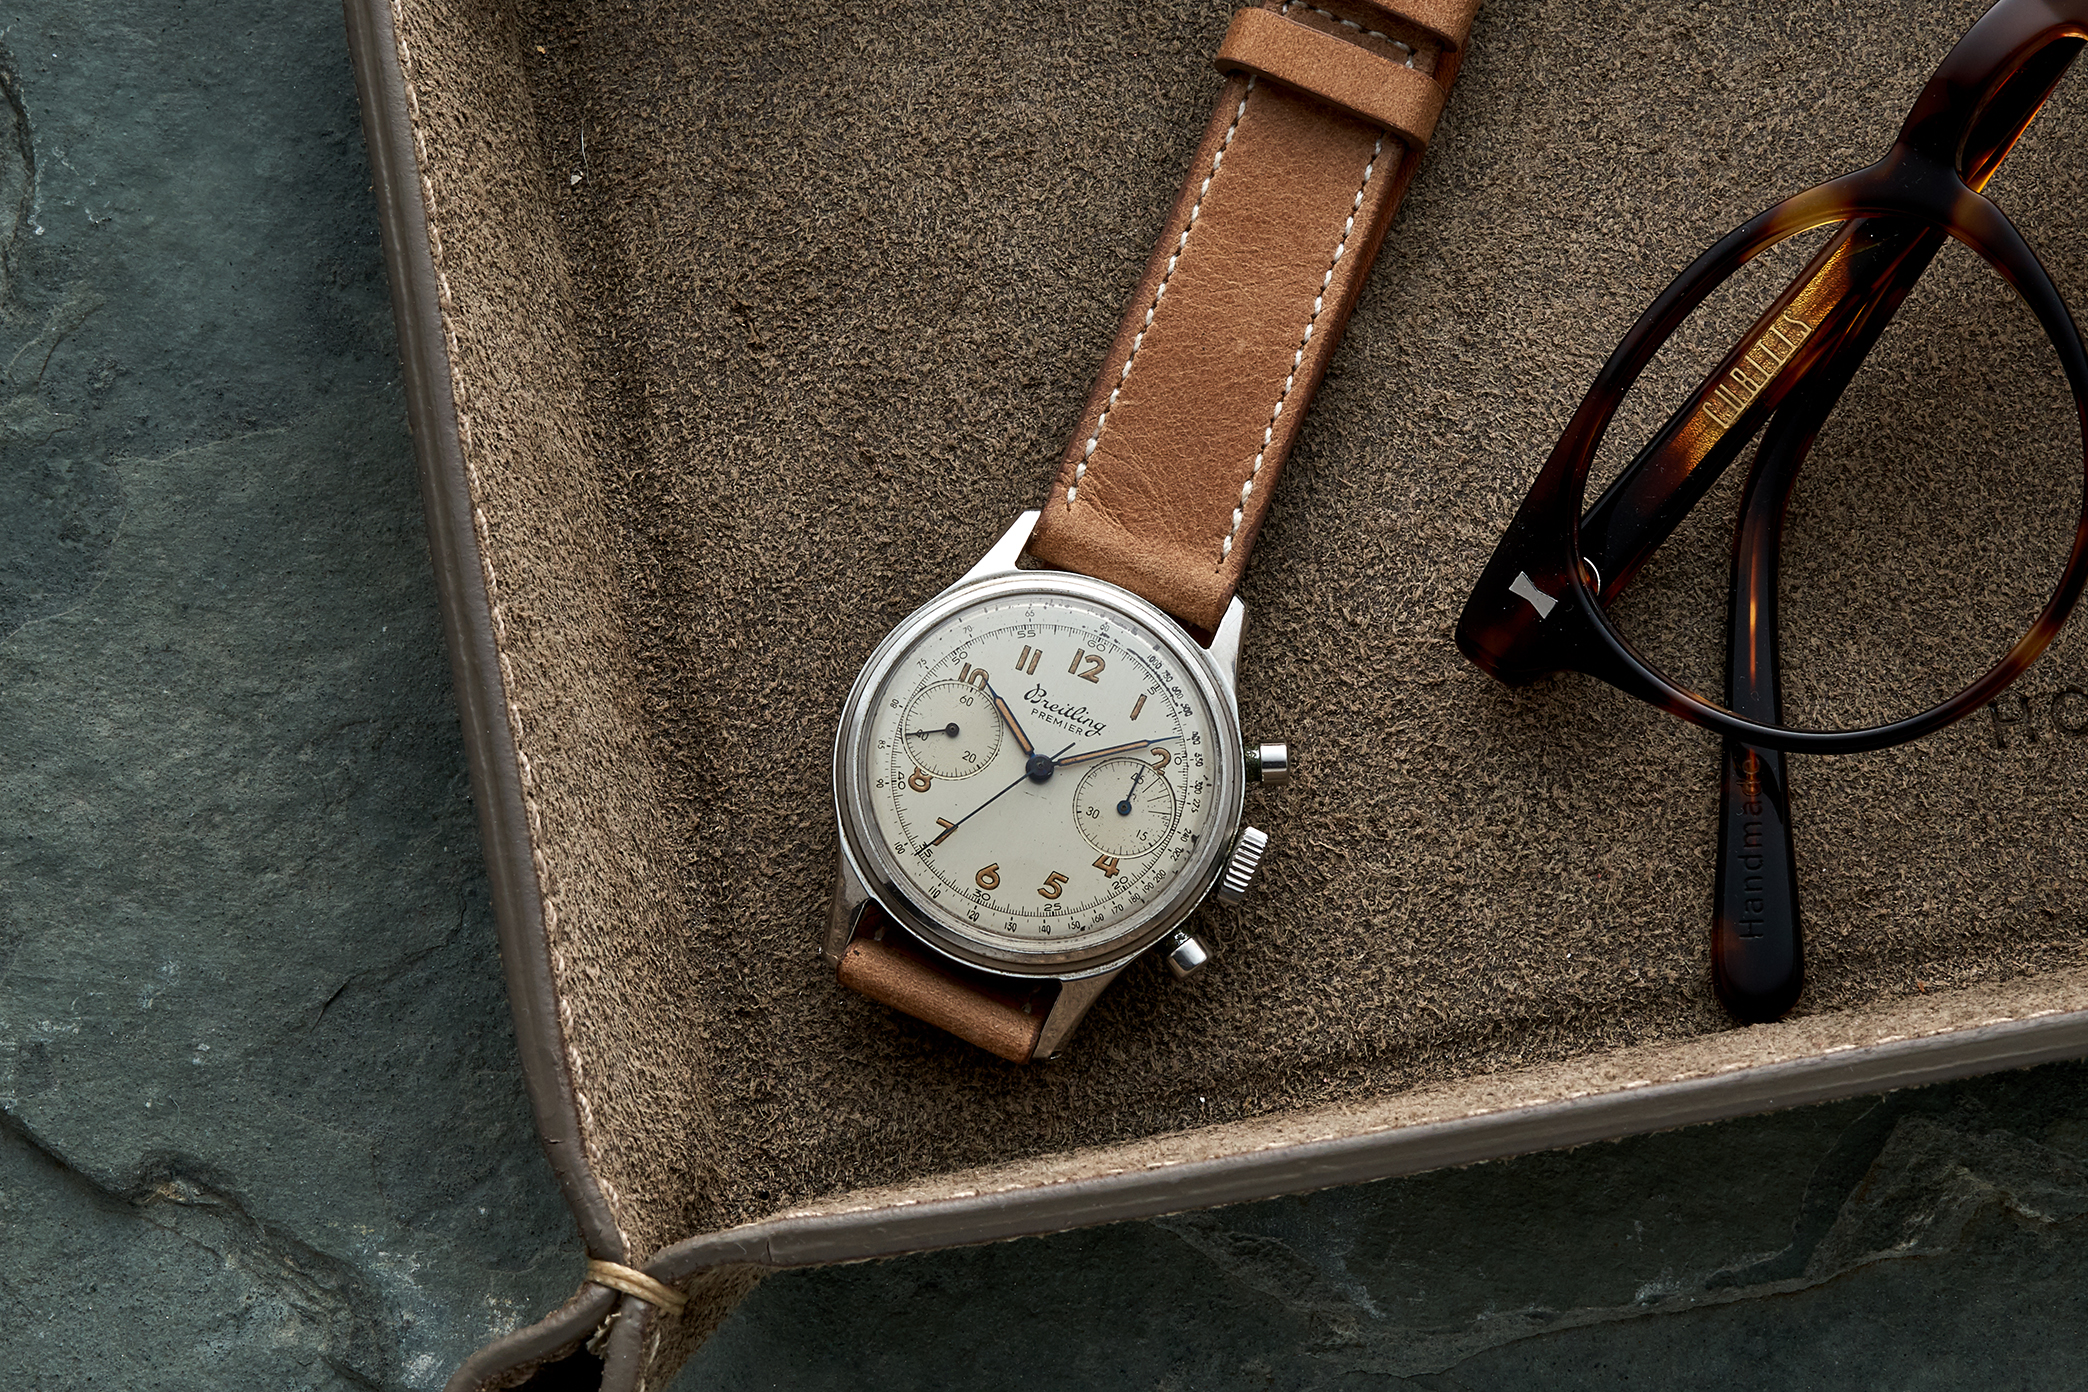 In The Shop Vintage Watches: A 1968 Longines Chronograph